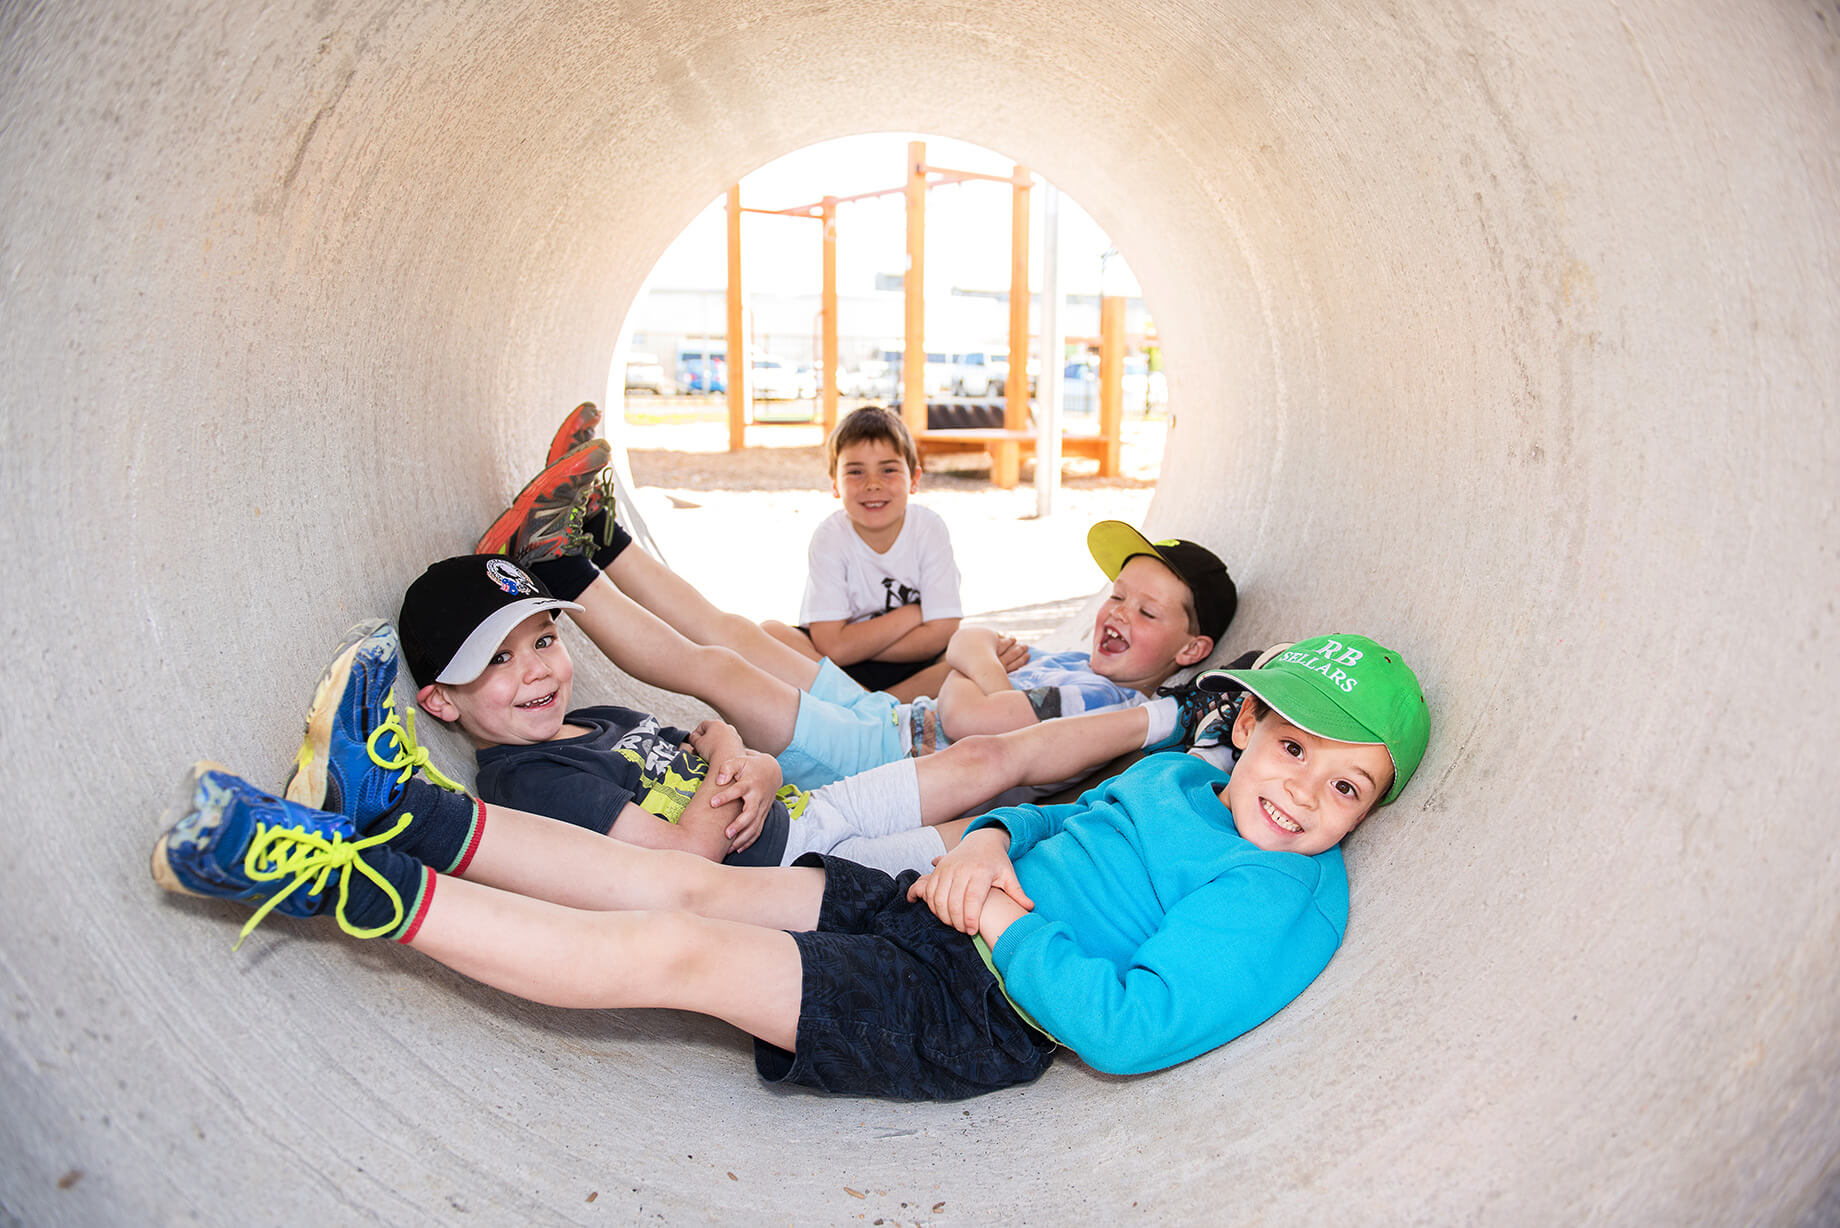 Four young boys are in a concreate pipe, three of them are laying across the pipe and one is sitting at the end of the pipe.